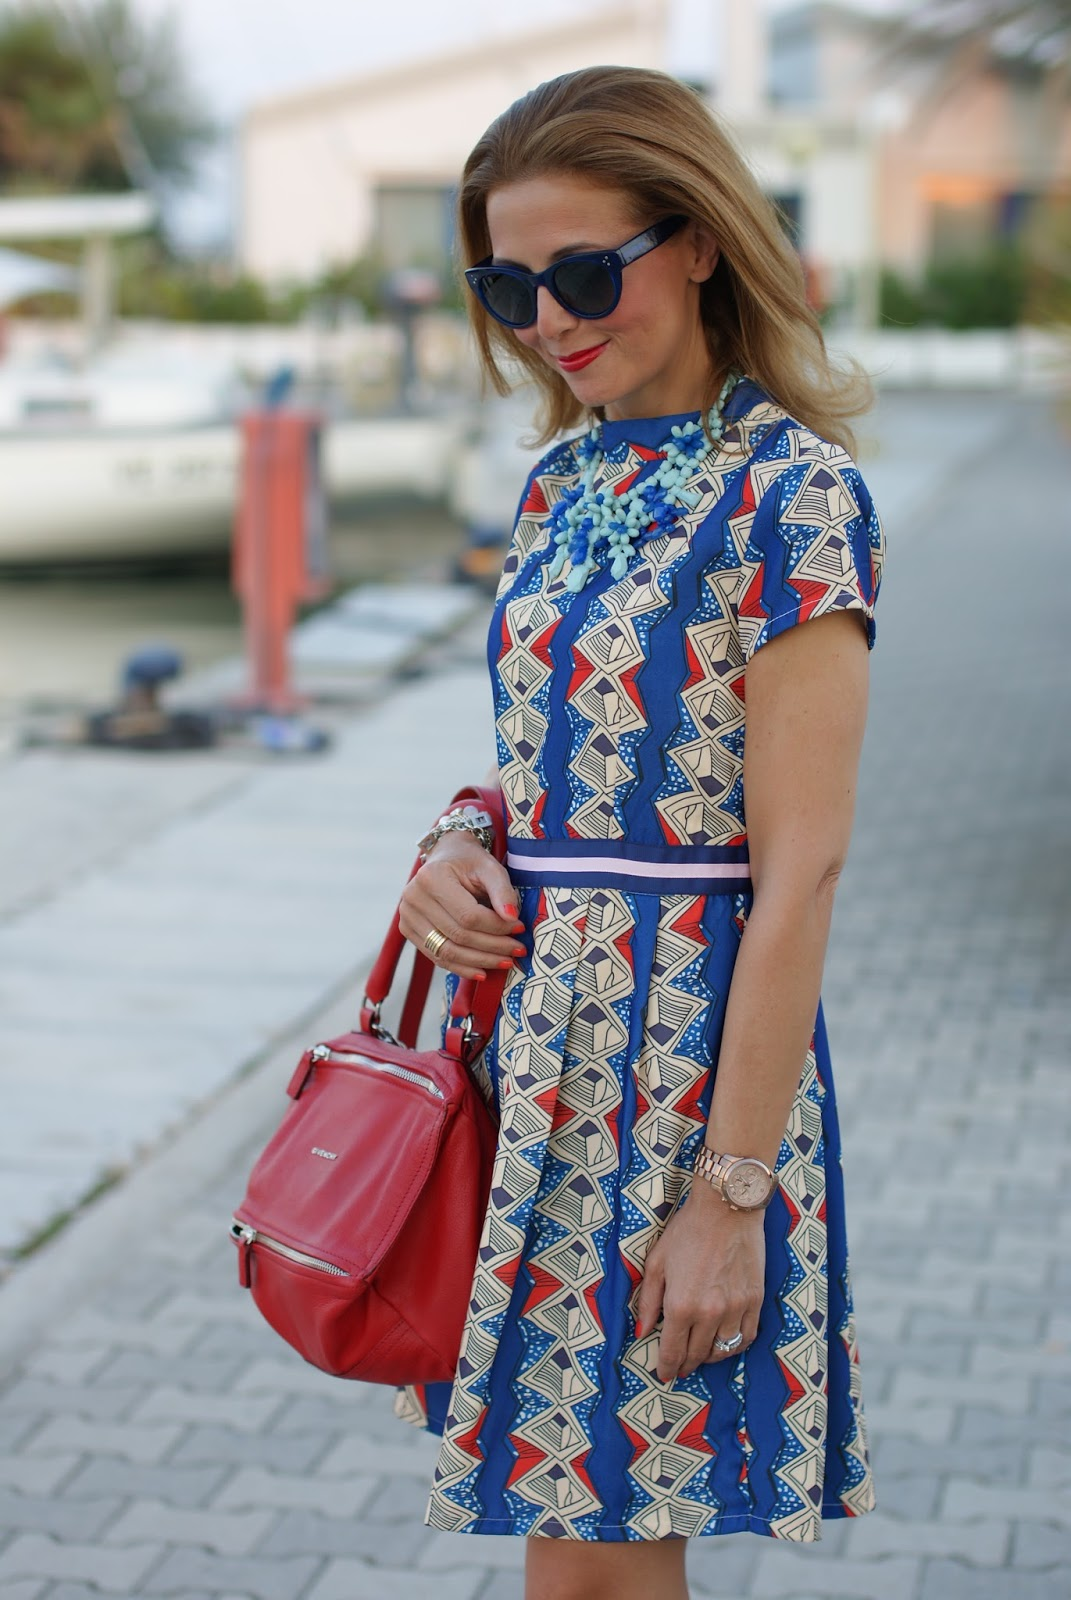 Zaful argyle print short dress, Givenchy Pandora bag in red and Hype Glass on Fashion and Cookies fashion blog, fashion blogger style